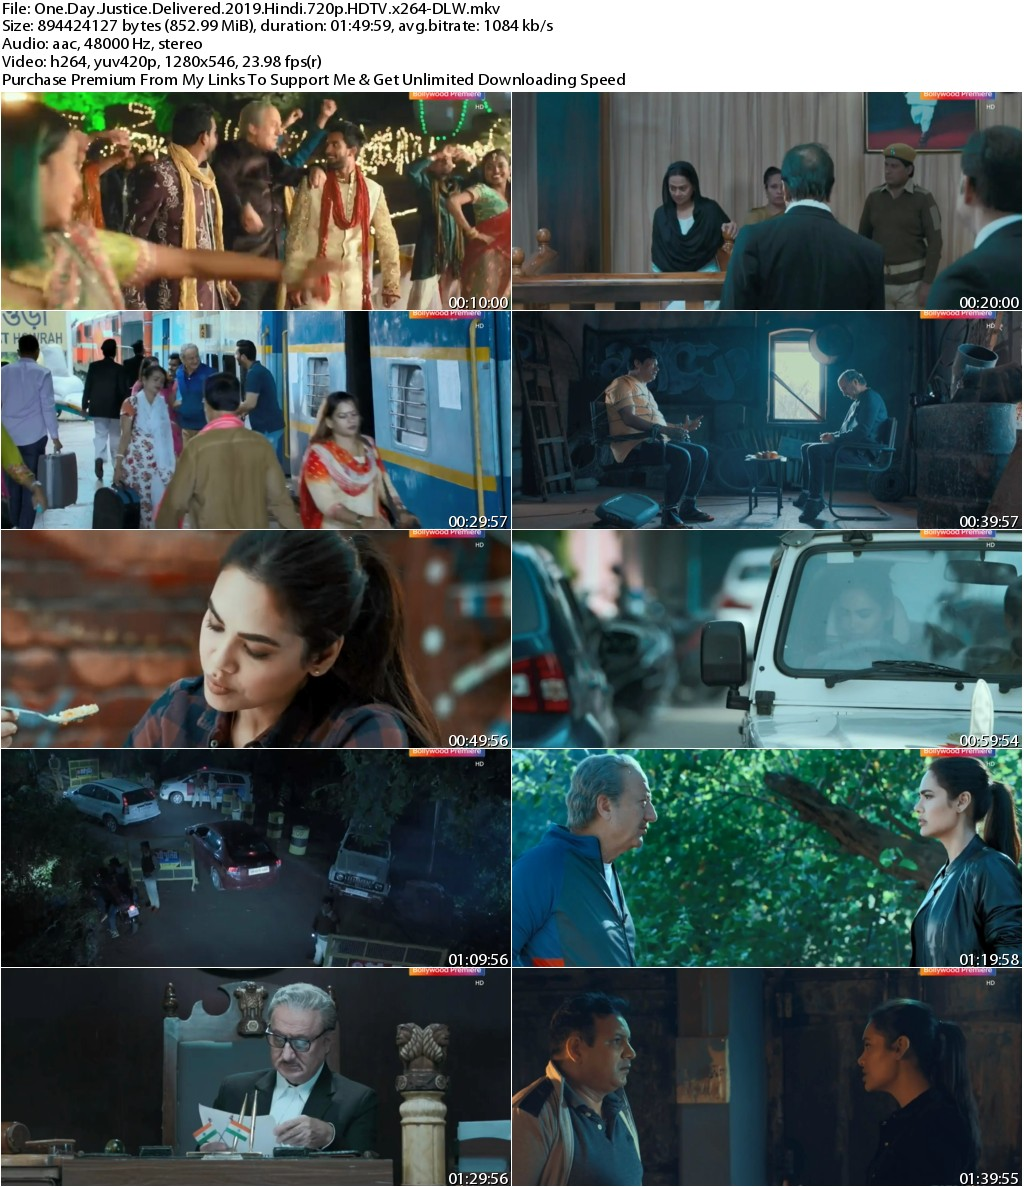 One Day Justice Delivered (2019) Hindi 720p HDTV x264-DLW